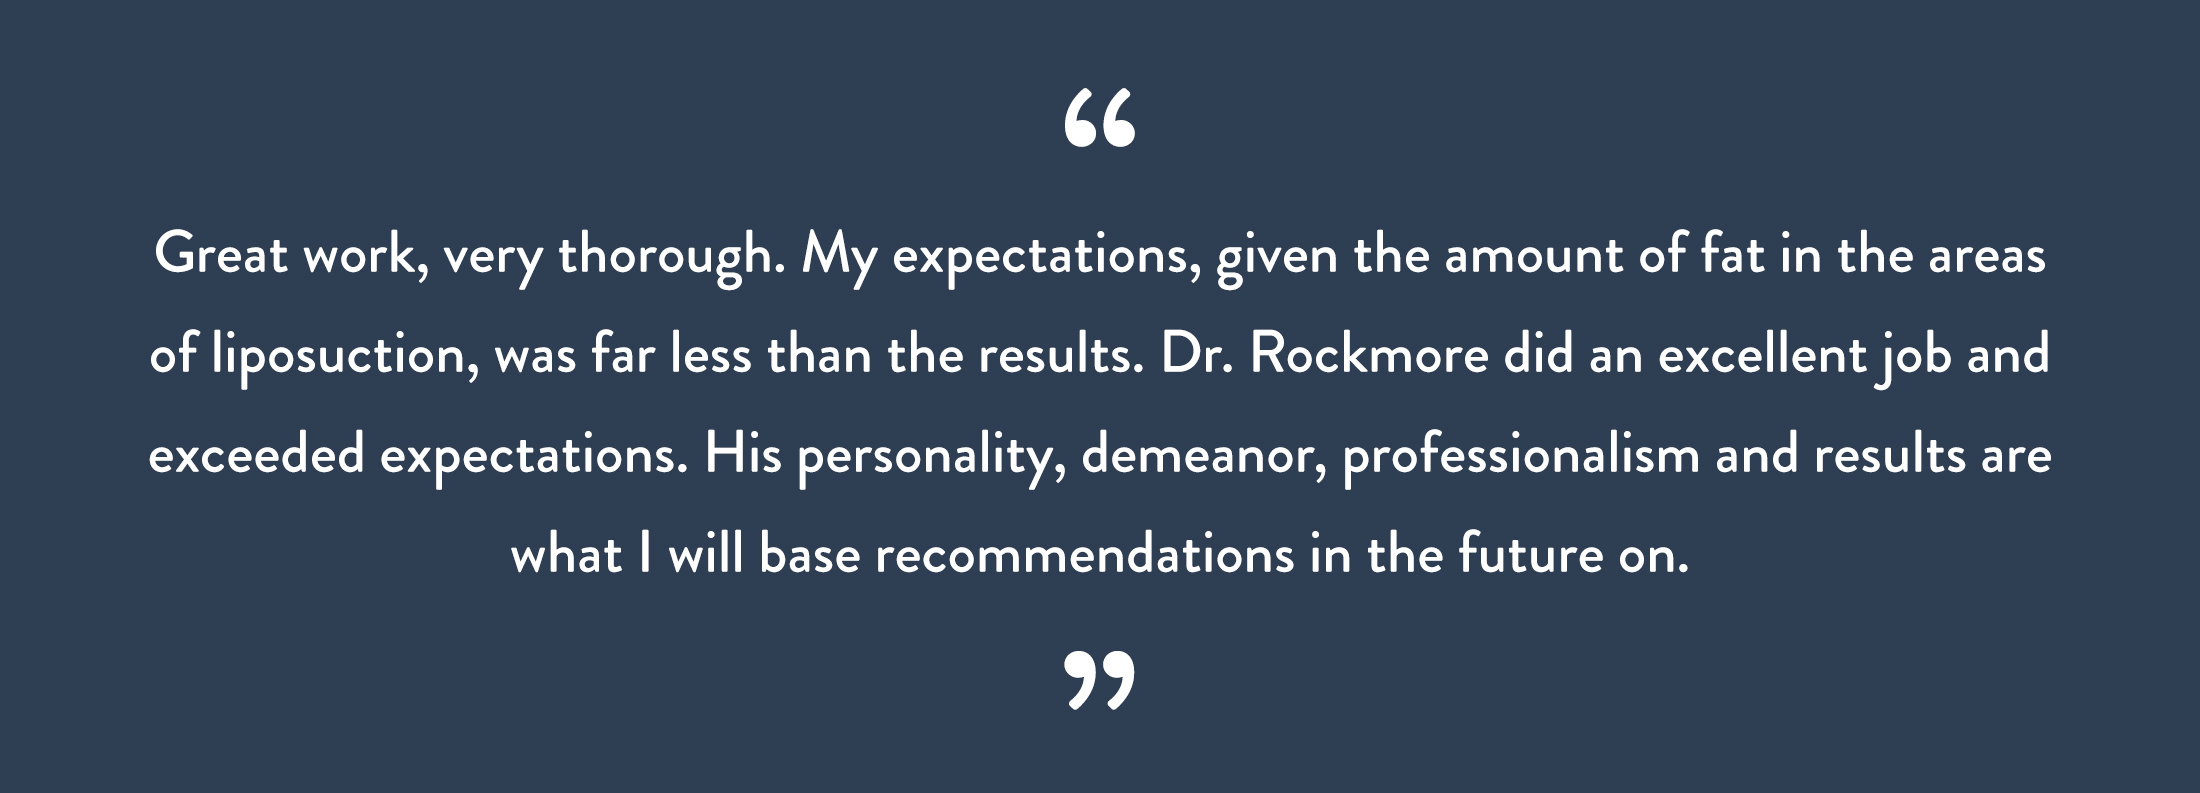 Great work, very thorough. My expectations, given the amount of fat in the areas of liposuction, was far less than the results.